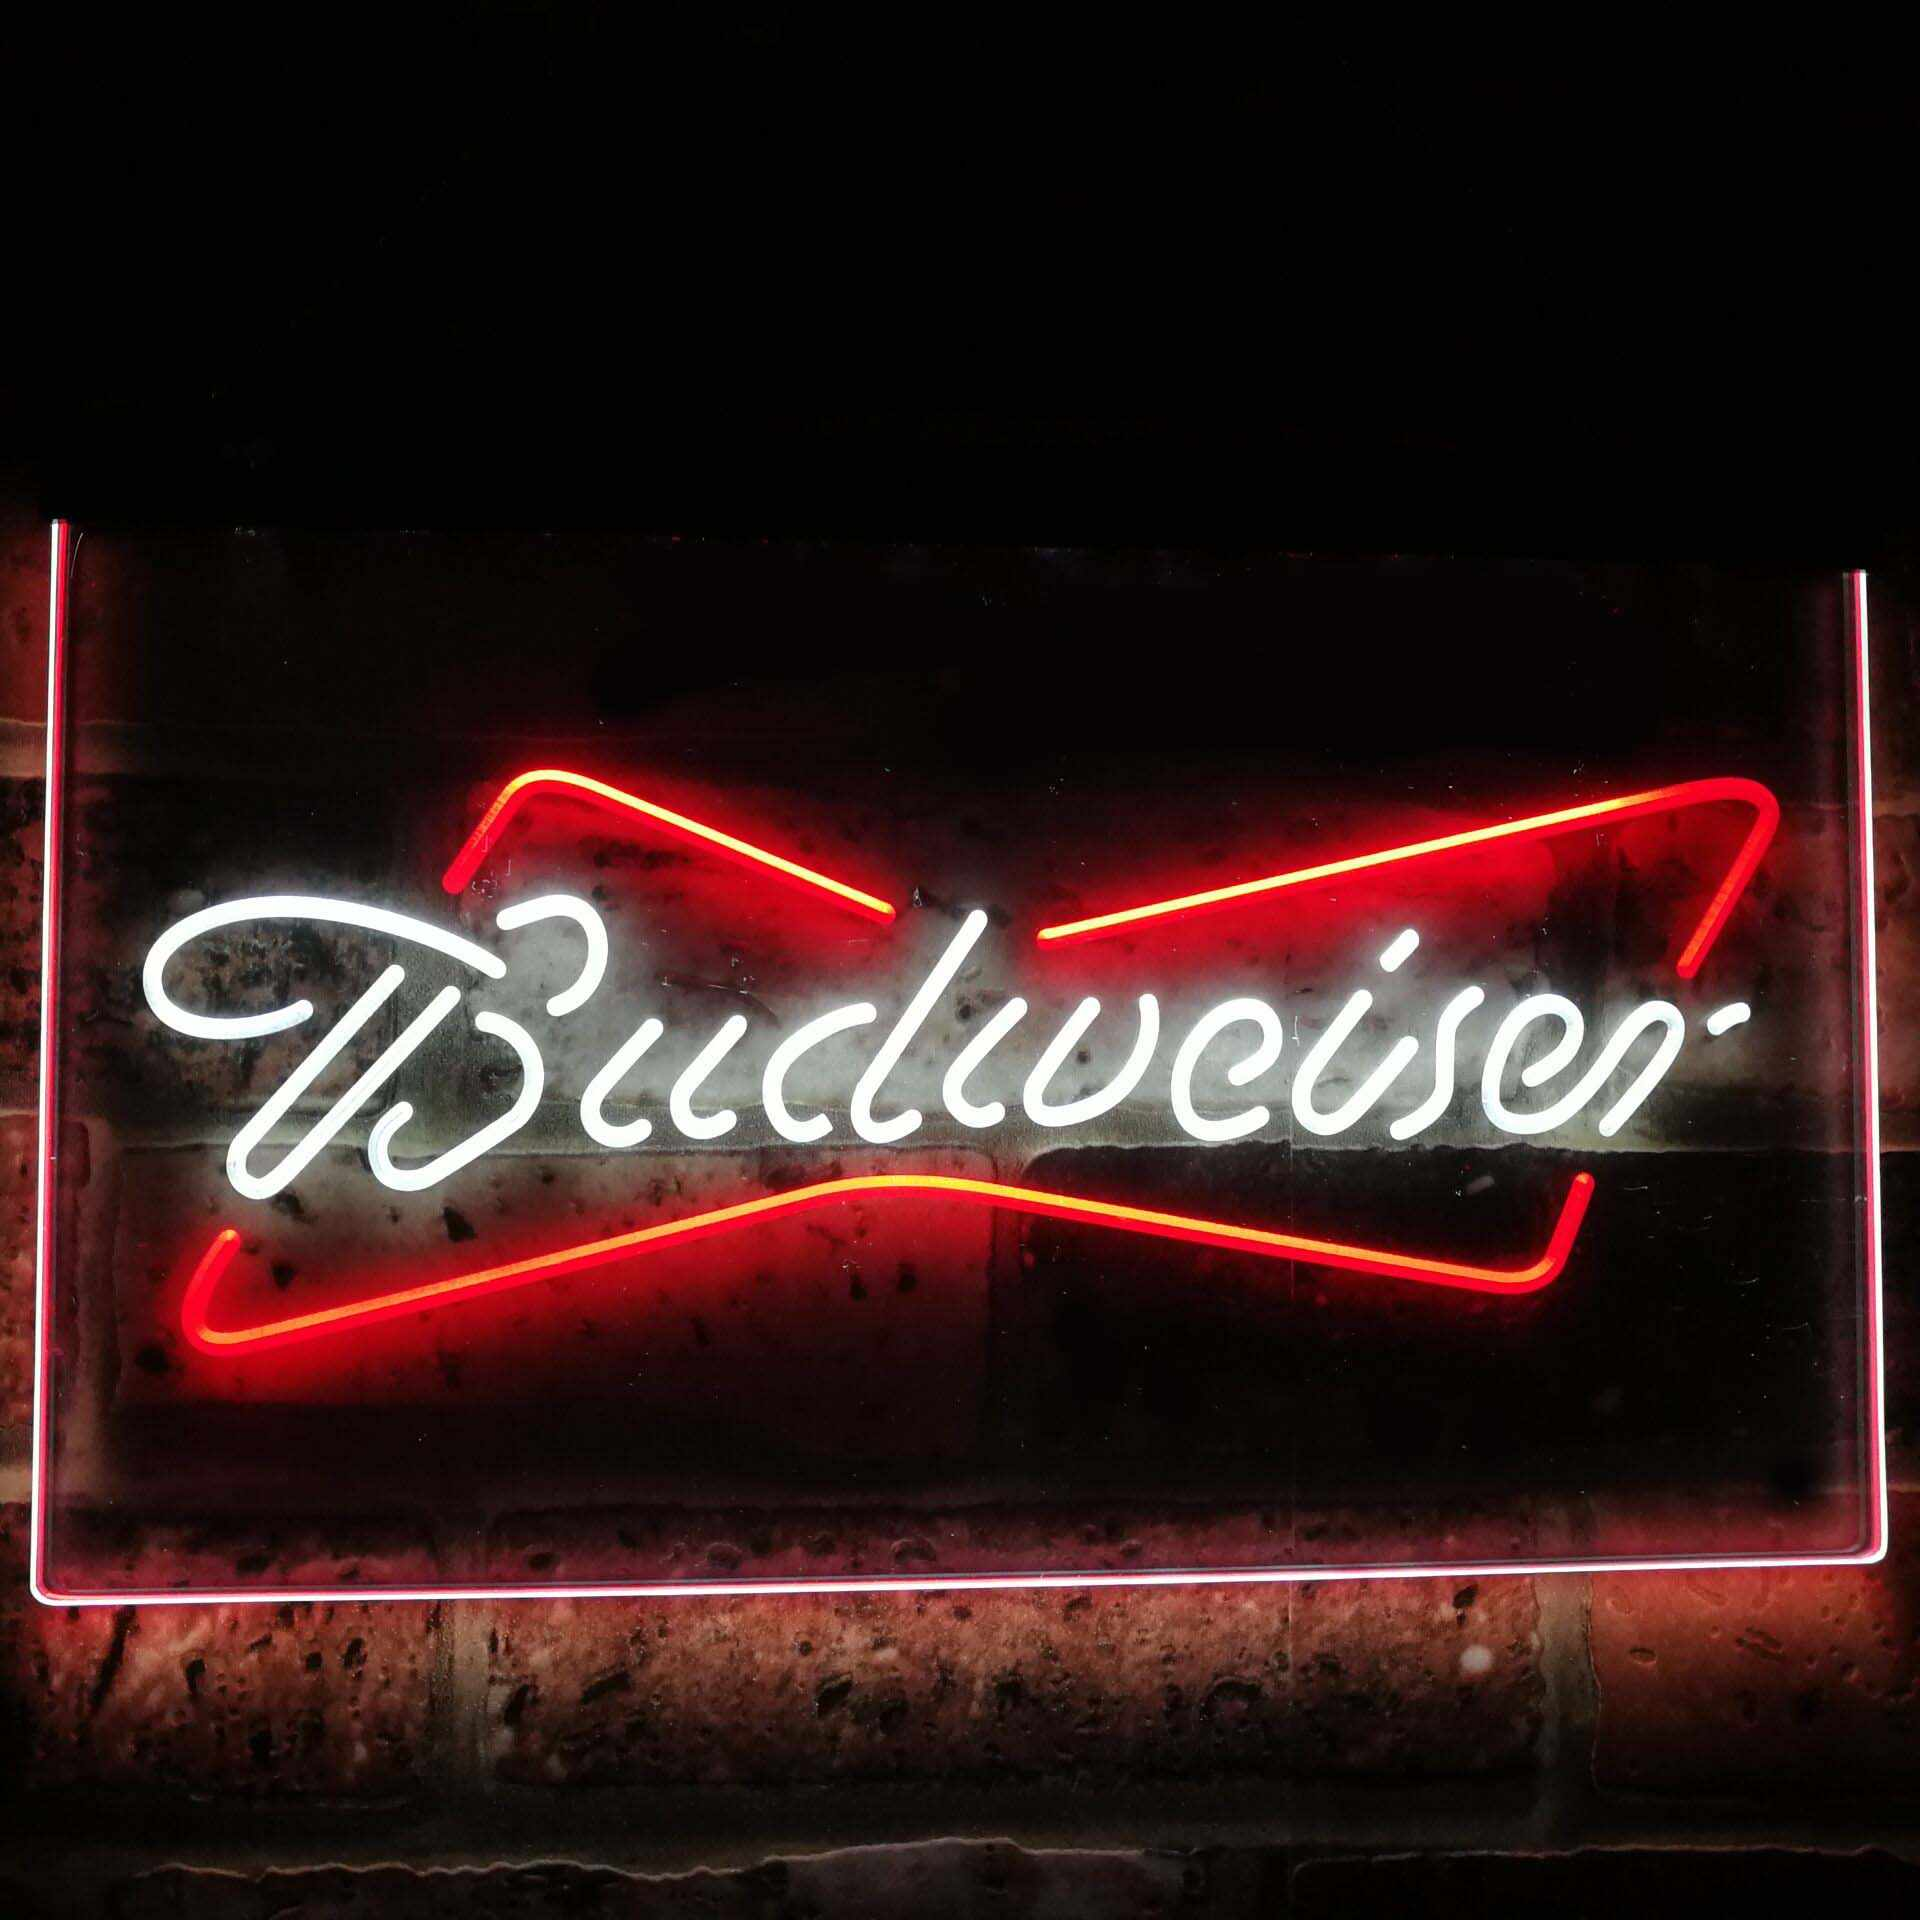 Budweiser Classic Beer Bar Decoration Gift Dual Color Led Neon Sign st6-a2009